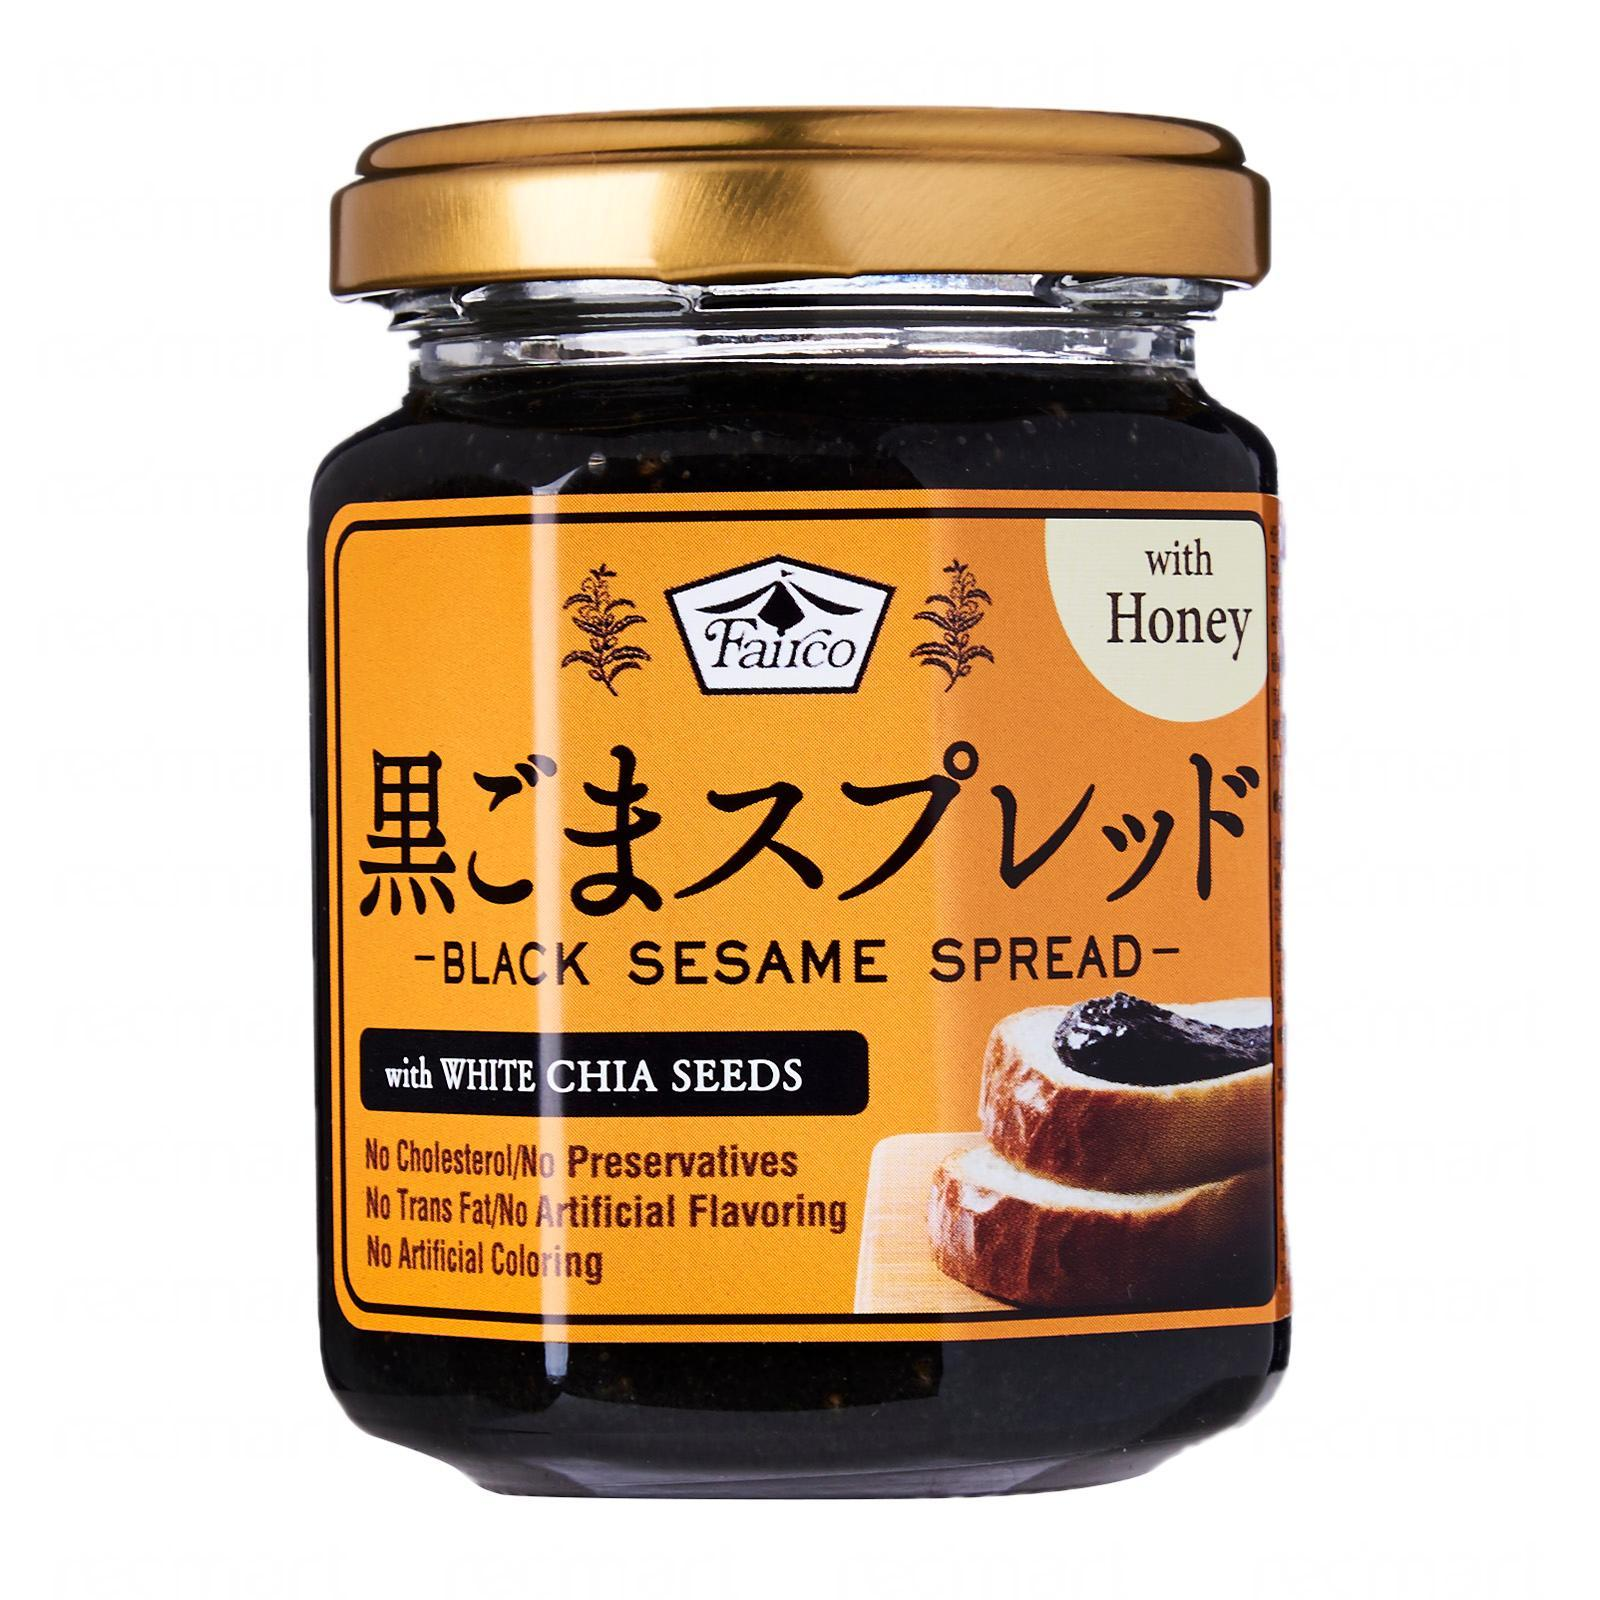 Fairco Premium Black Sesame Spread (W/White Chia Seeds And Honey)